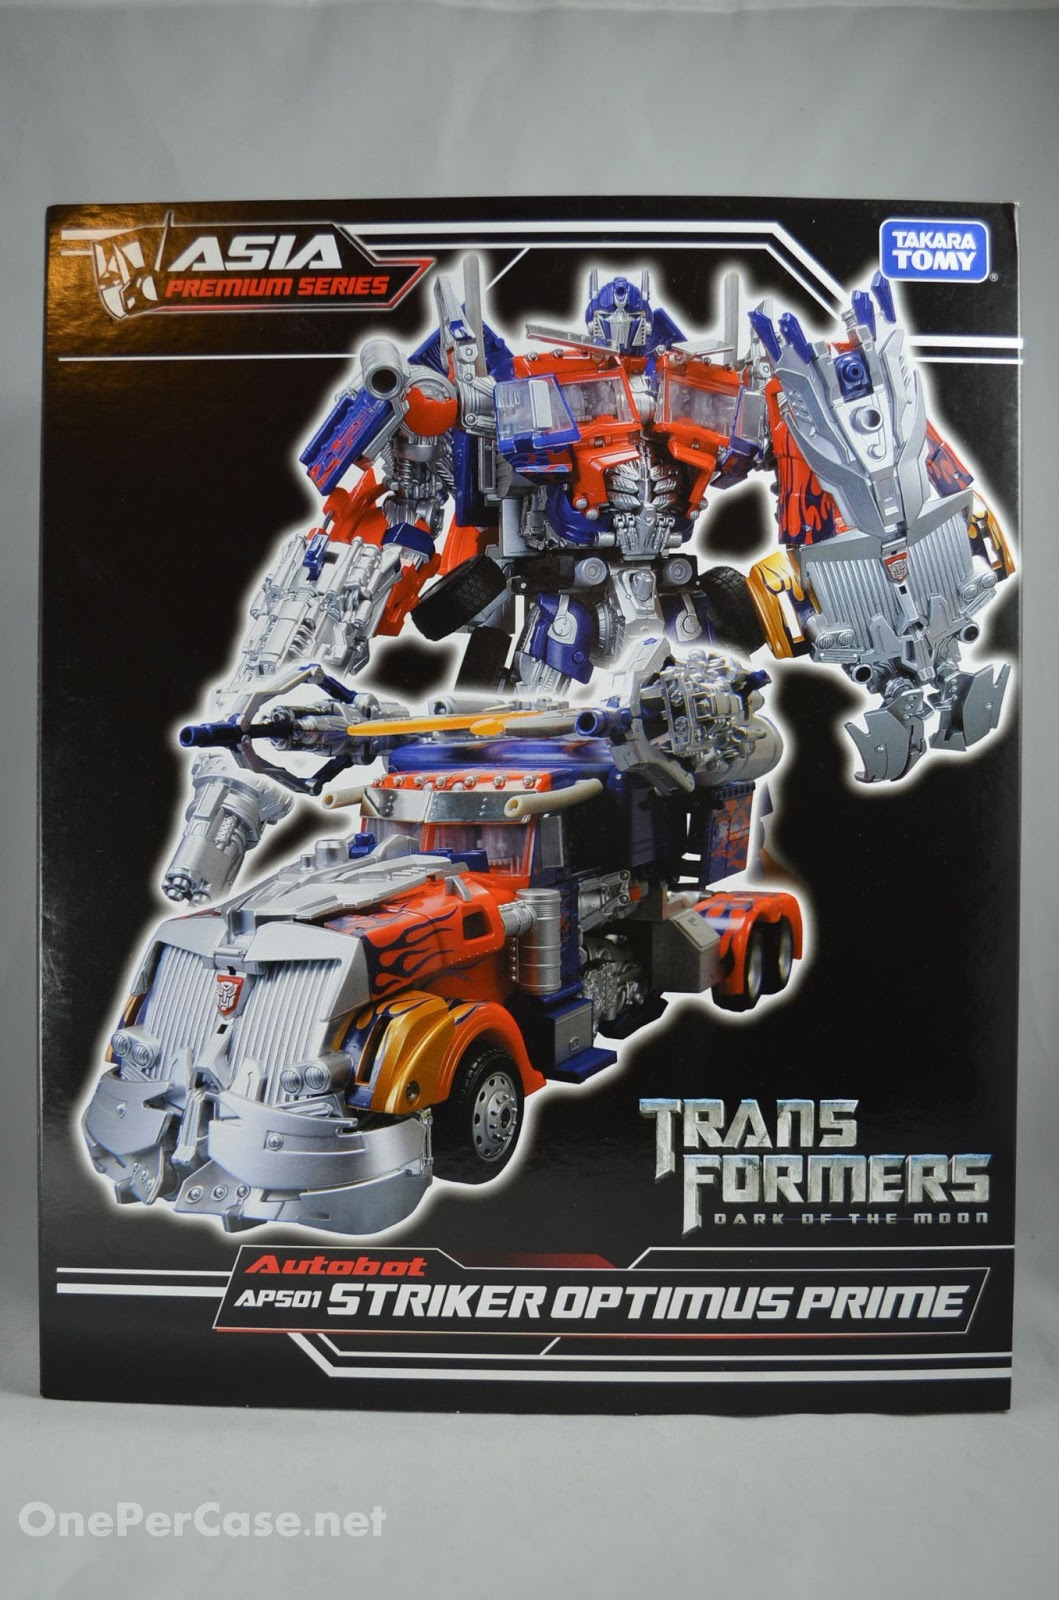 Takara Tomy Striker Optimus Prime Takara Tomy Aps 01 Striker